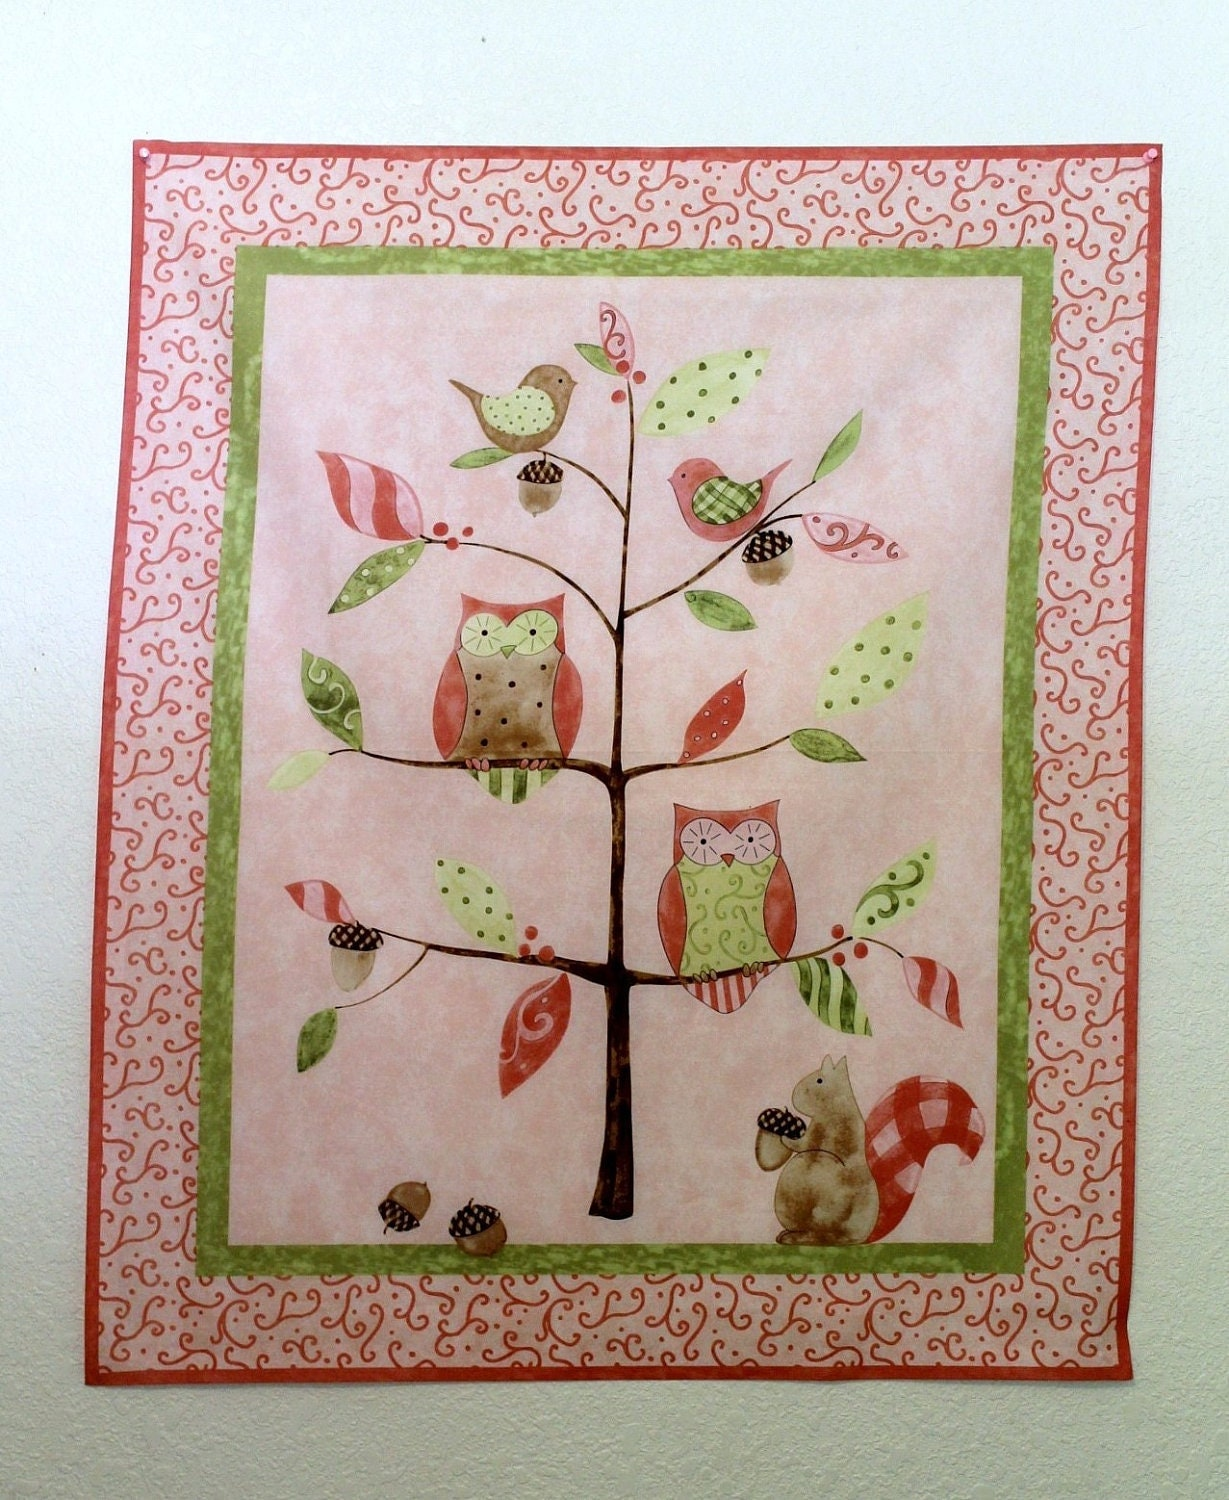 Wall Decor With Fabric : Wall decor pink owls fabric panel baby nursery kids children